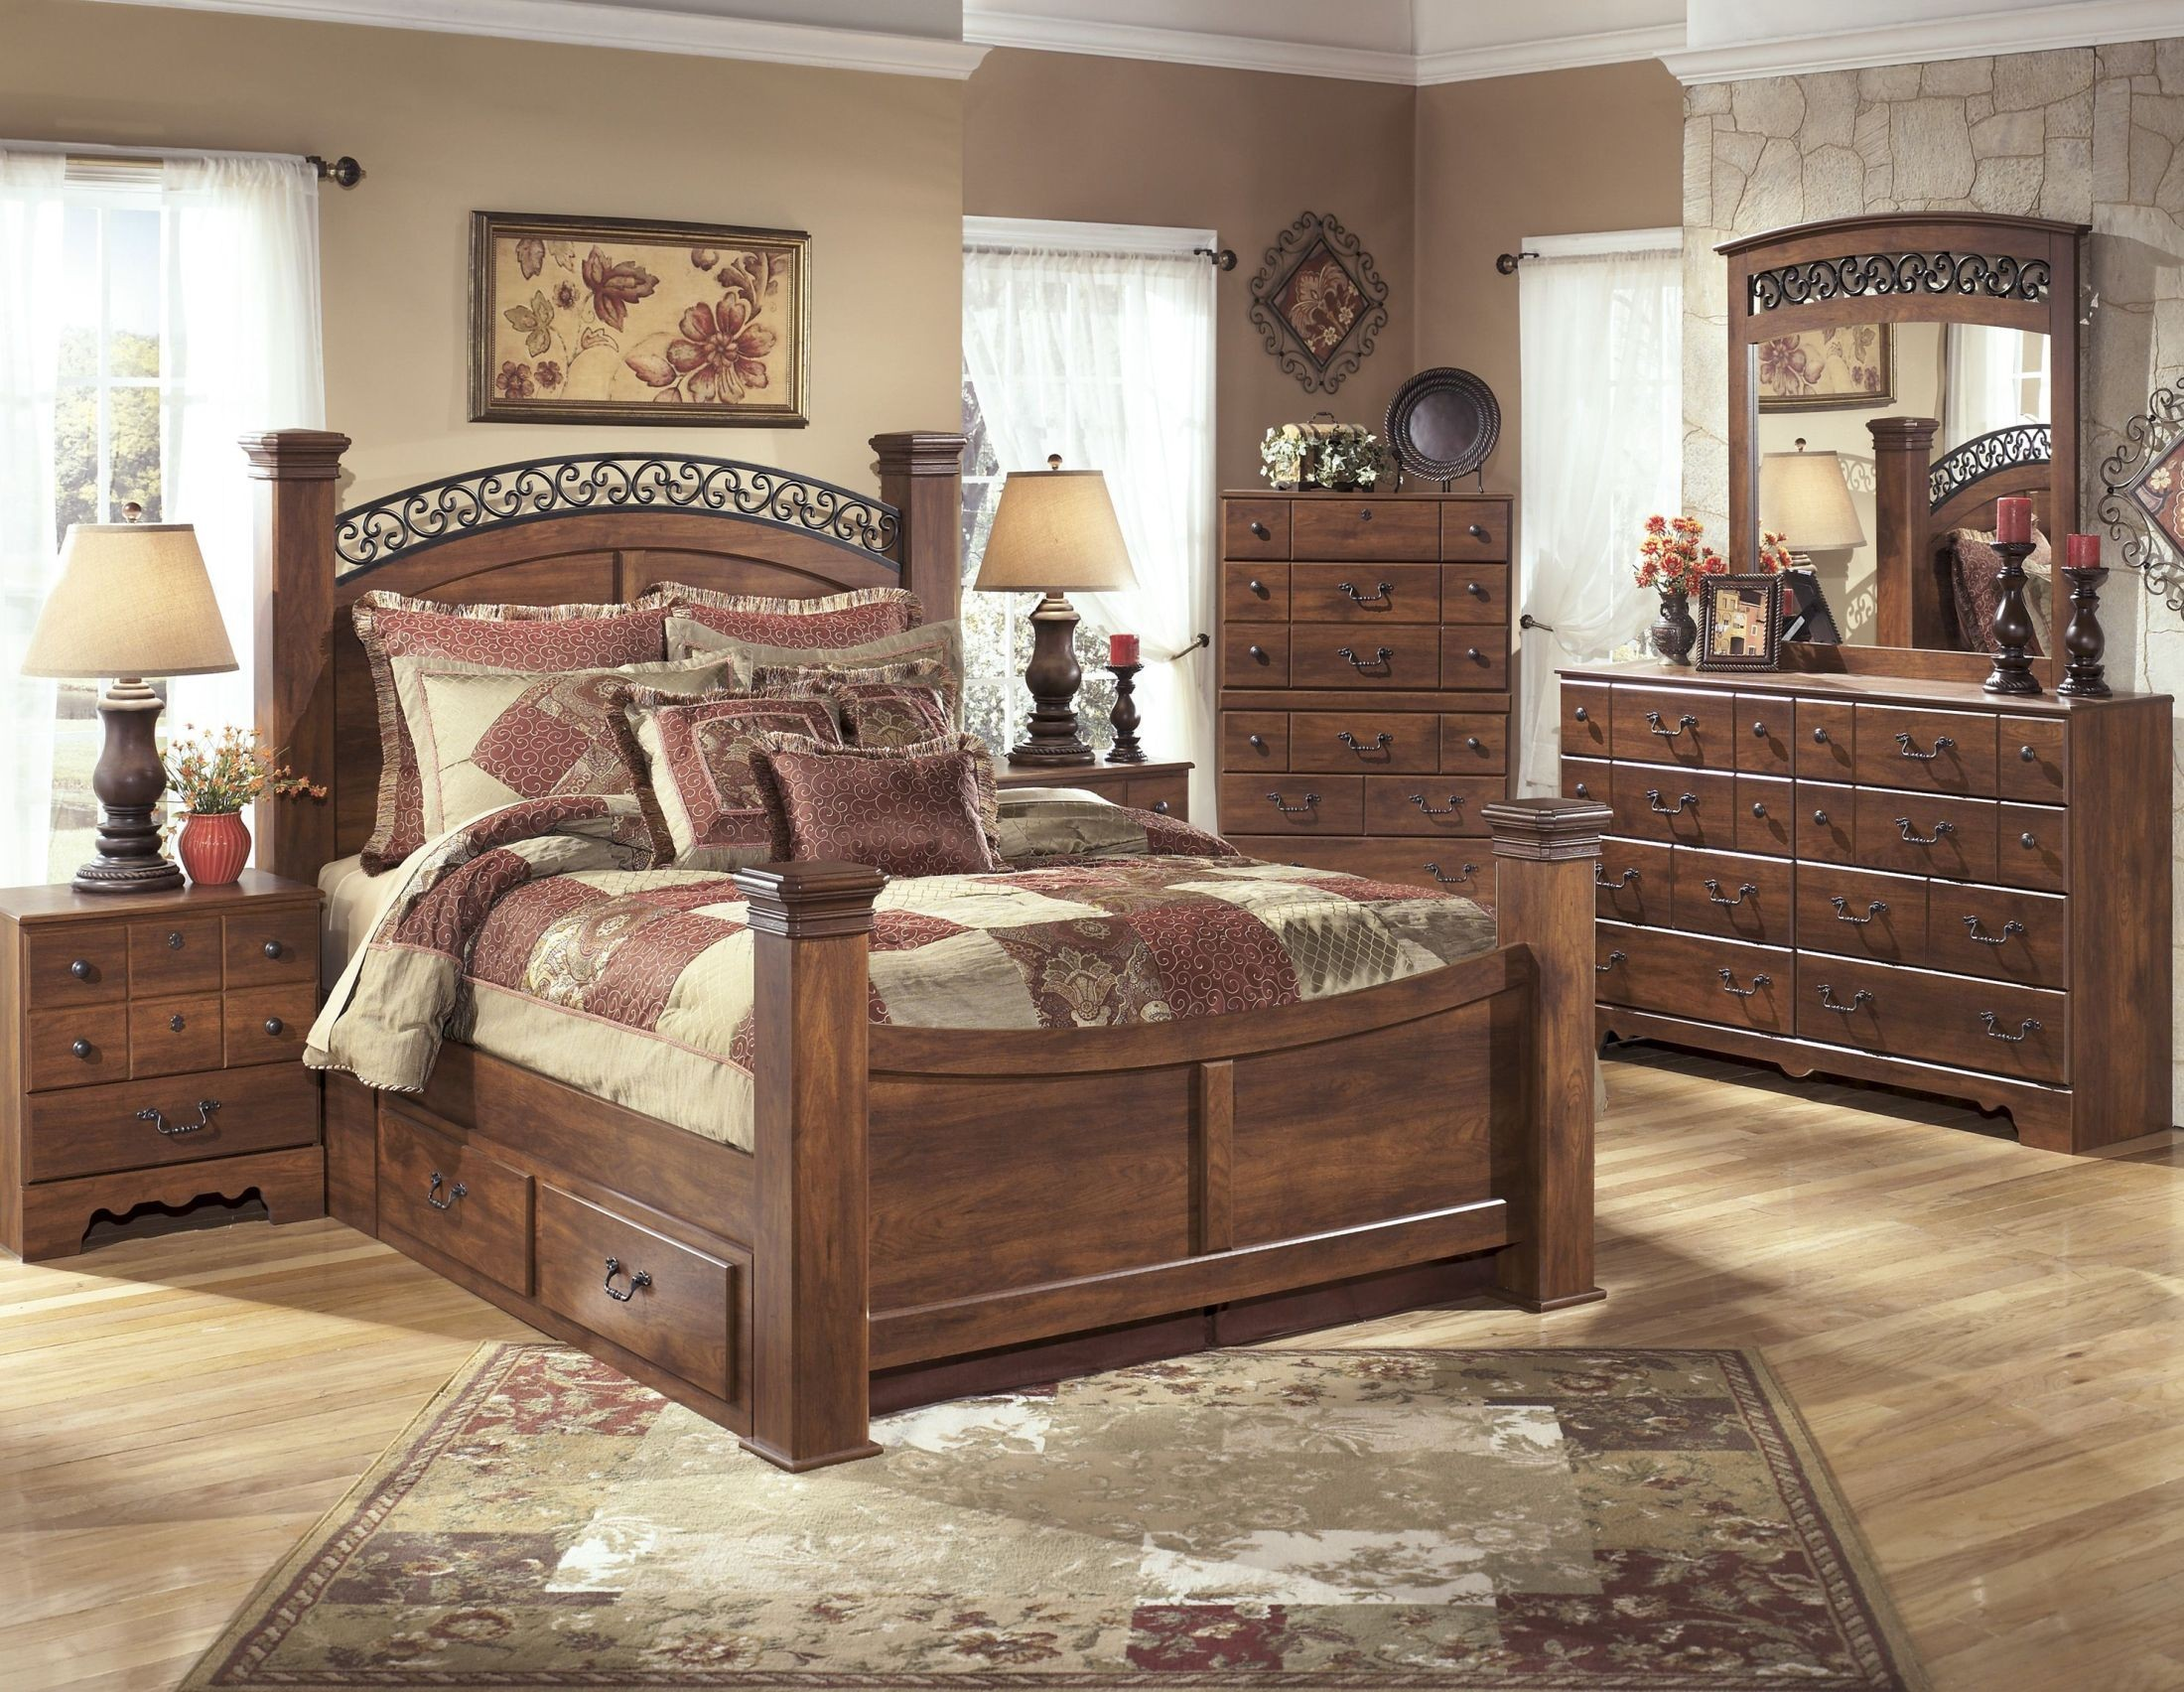 Timberline Bedroom Set From Ashley B258 Coleman Furniture